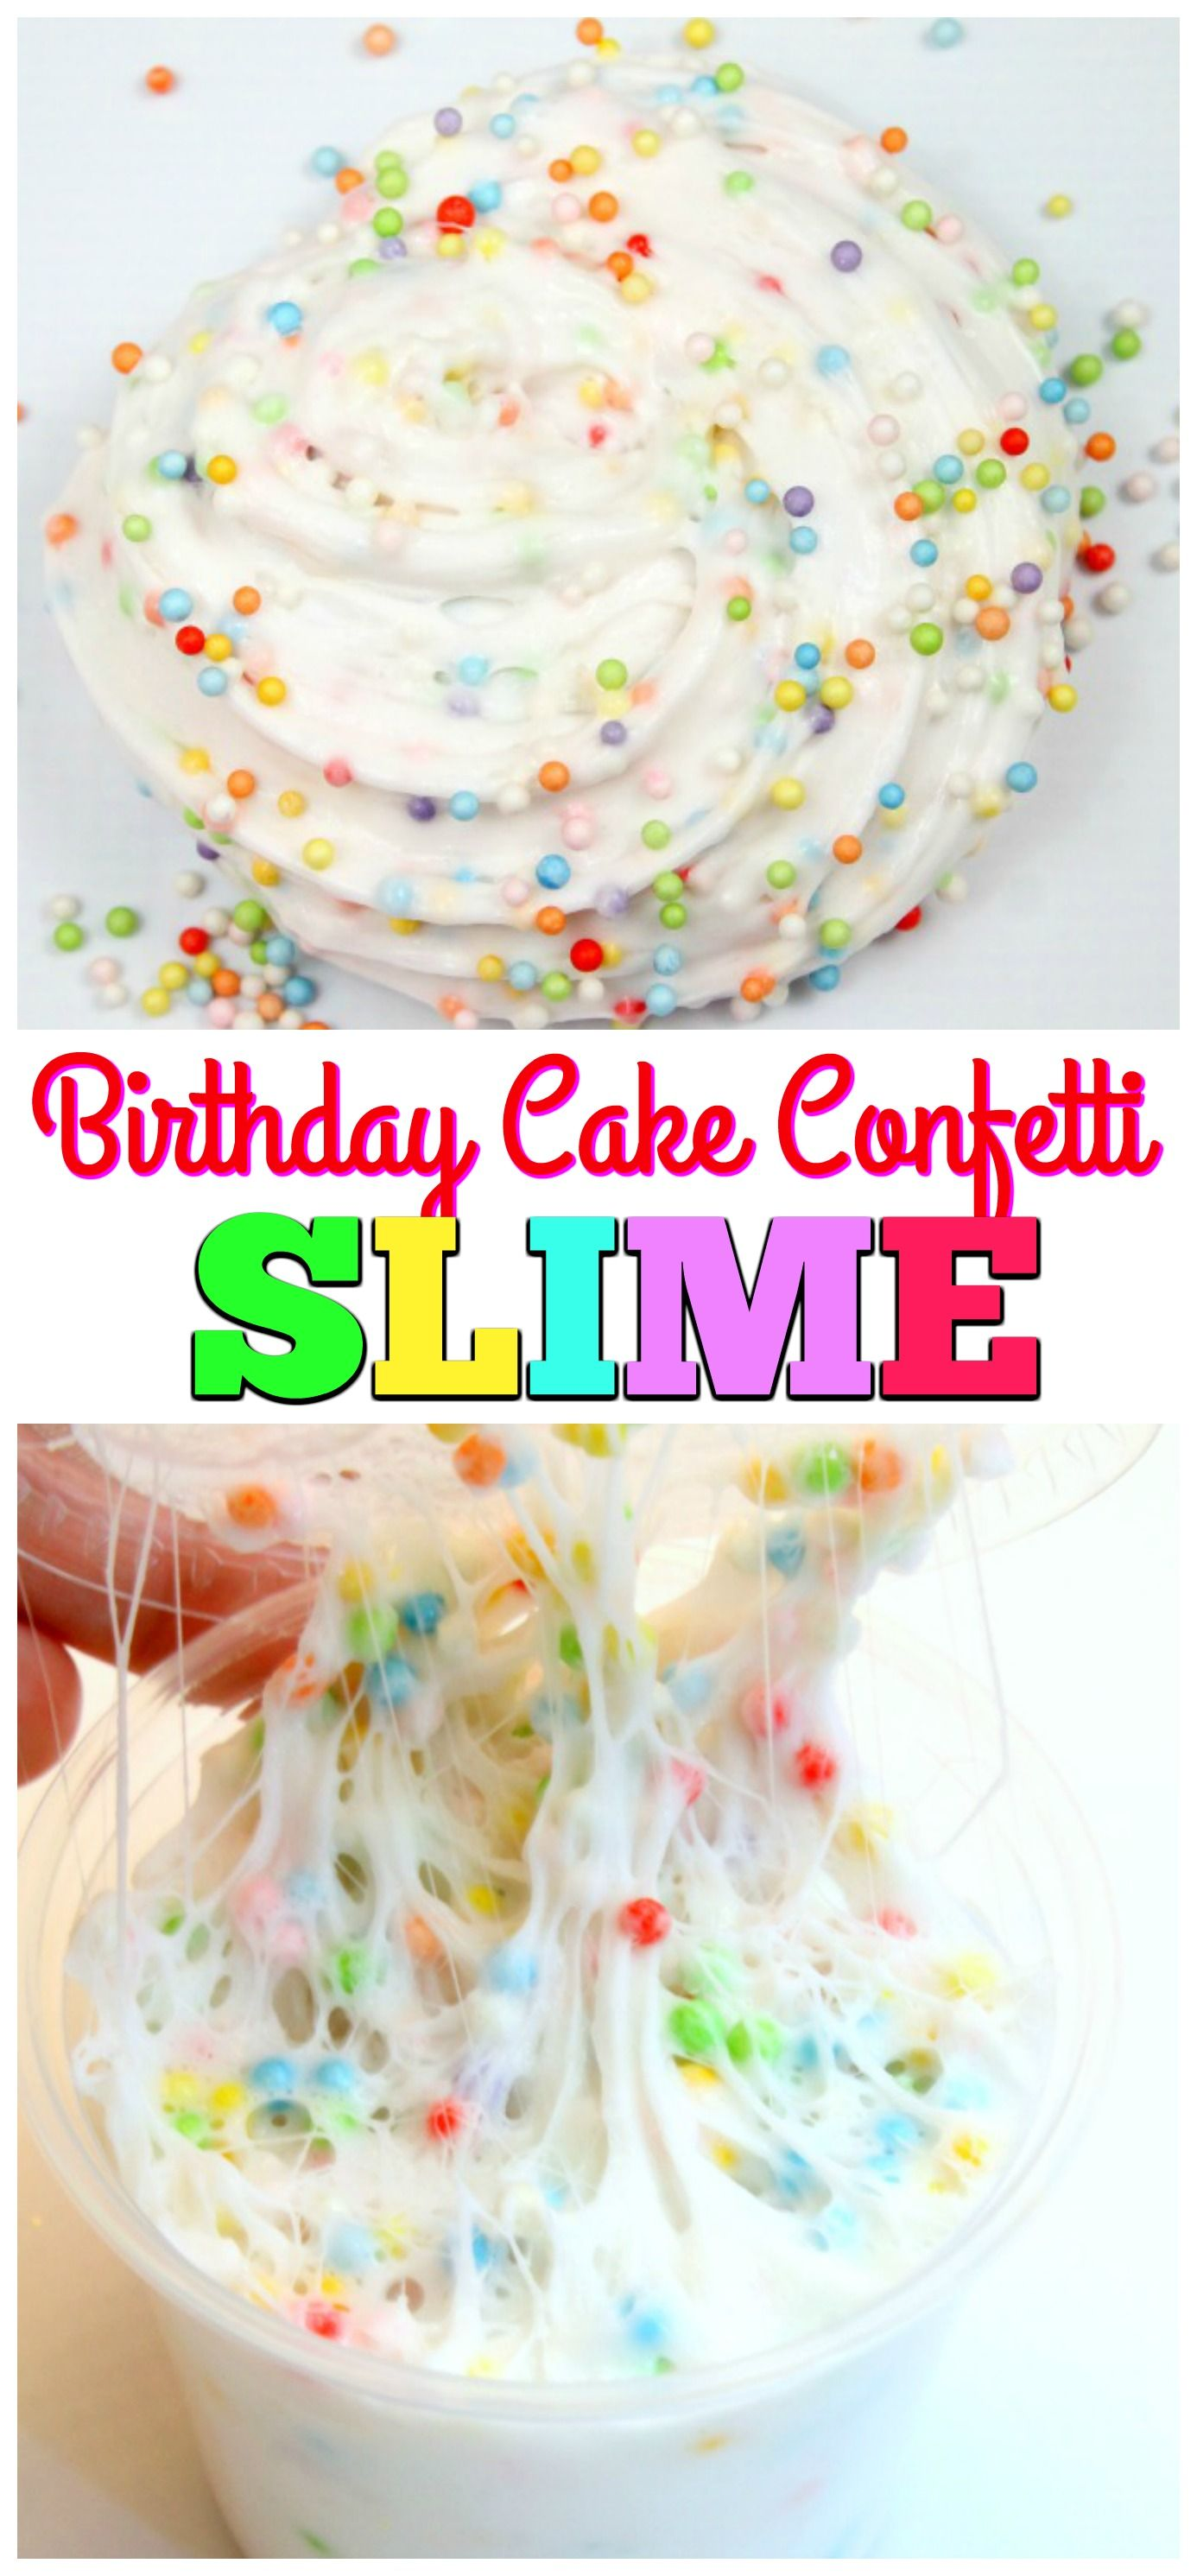 Birthday cake confetti slime recipe best fluffy slime fluffy slime birthday cake confetti slime easy fluffy slime recipe that is super stretchy and fluffy learn how to make make soft serve swirls with fluffy slime via ccuart Images